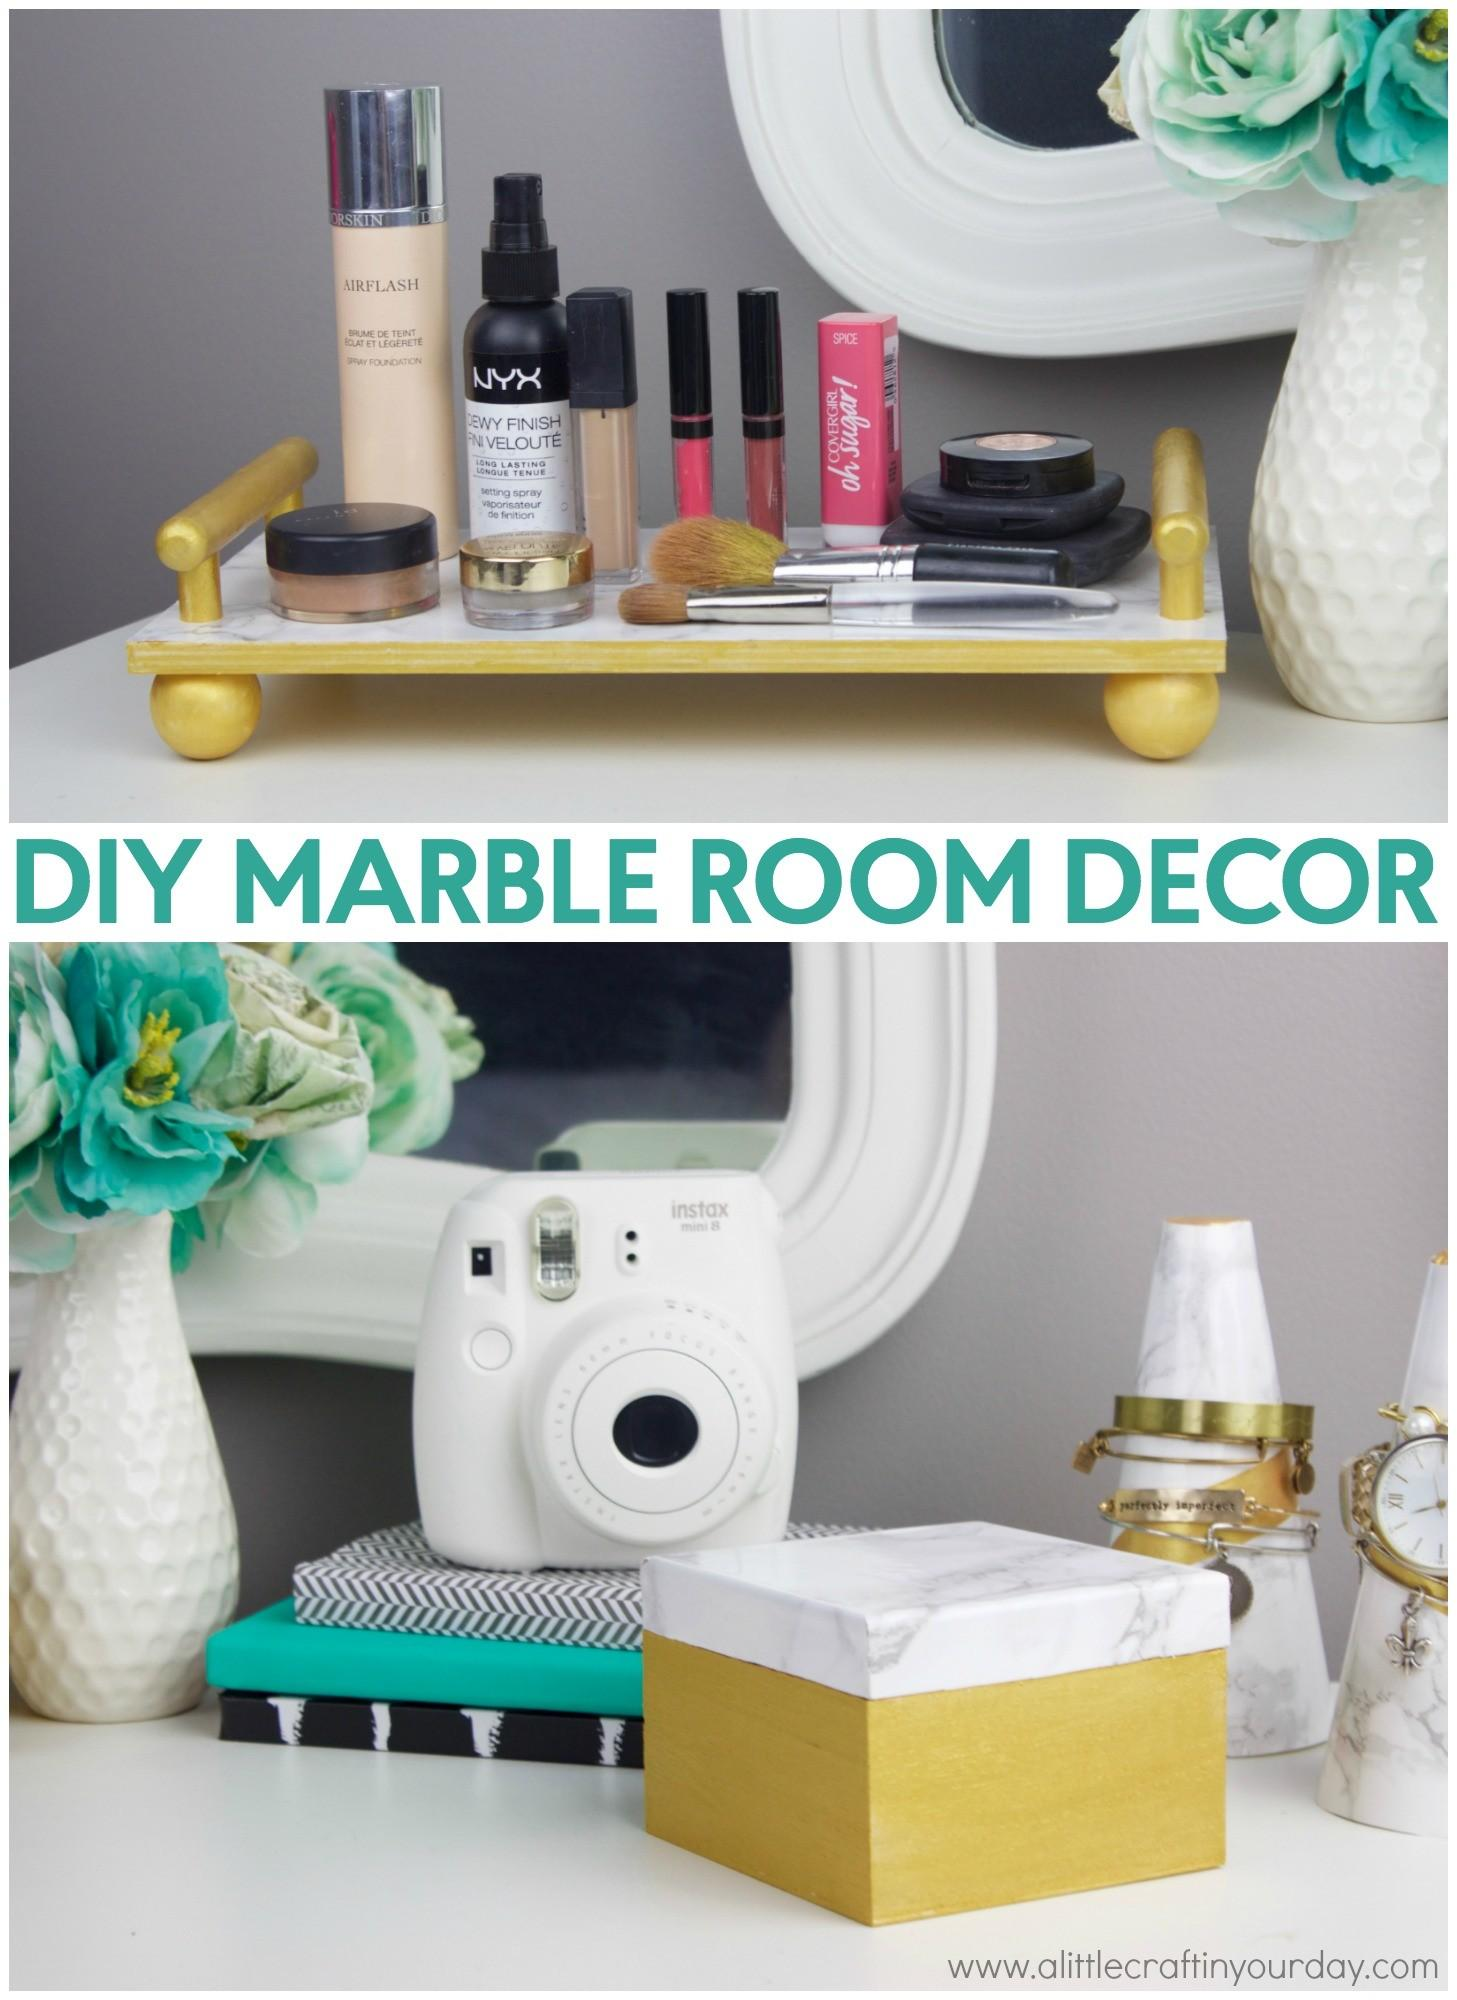 Diy Marble Room Decor Little Craft Your Day